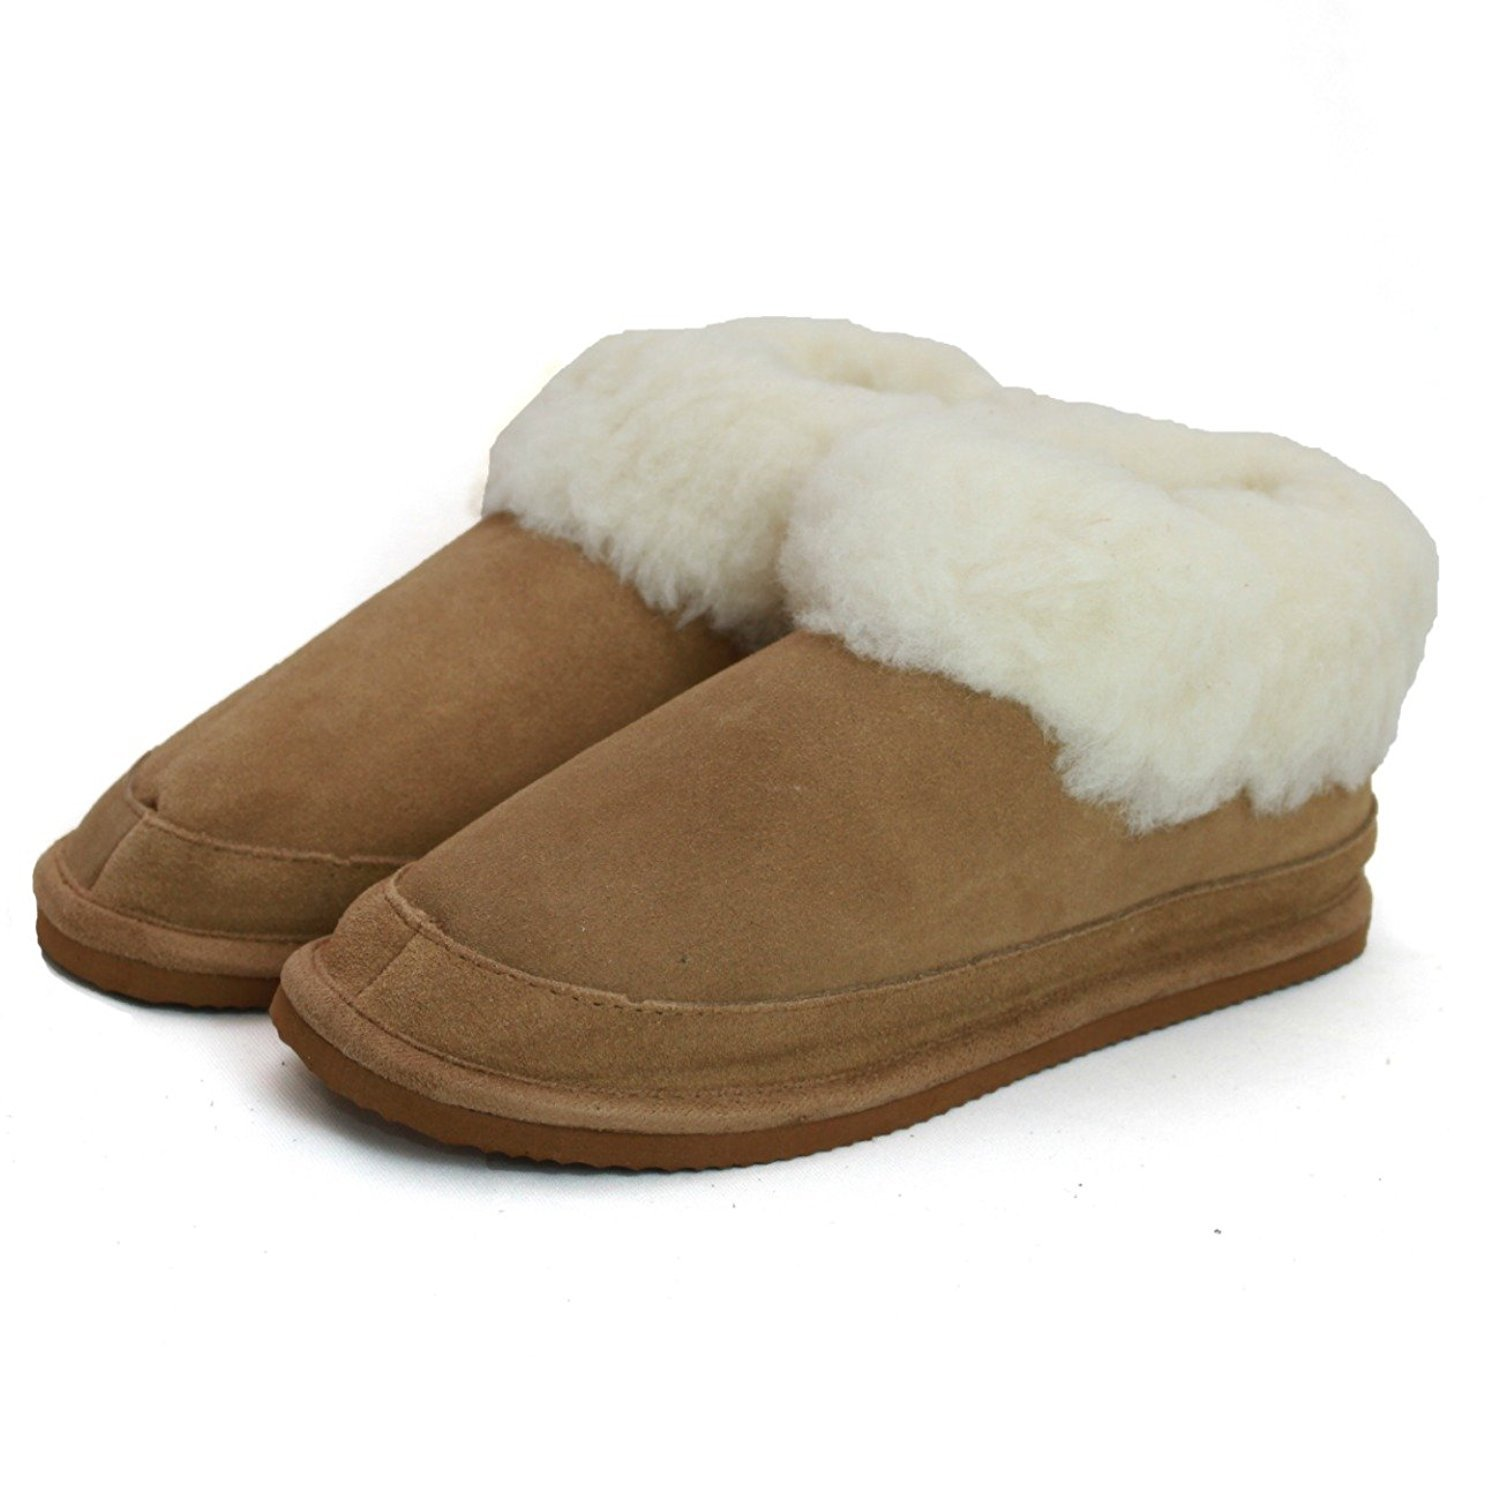 0189a1cbed64d Papucs Sheepskin Suede Slipper Boots with Wool Mix Lining and Sturdy Non  Slip Grip Sole: Amazon.co.uk: Shoes & Bags